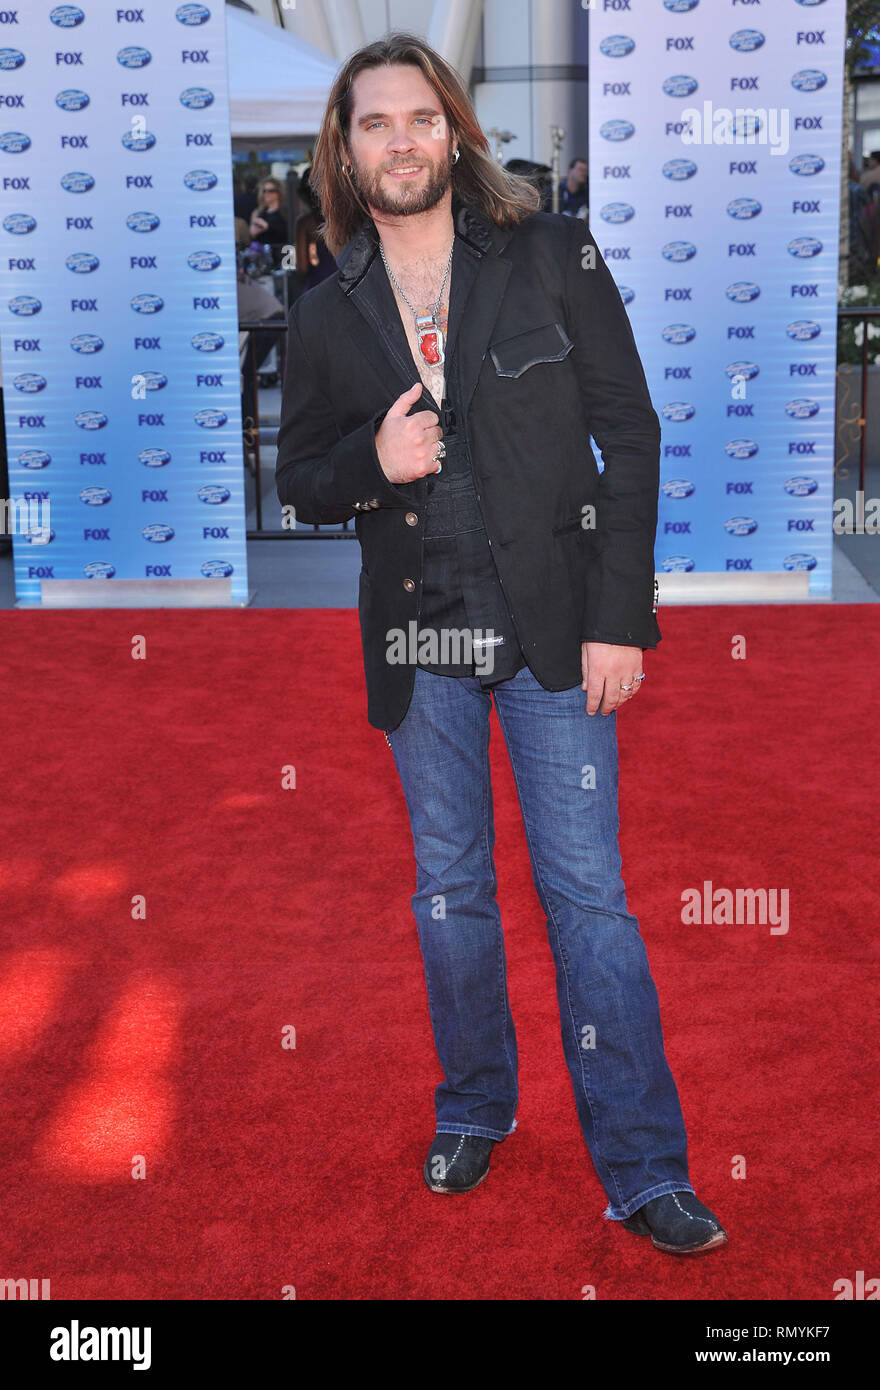 Bo Bice High Resolution Stock Photography And Images Alamy